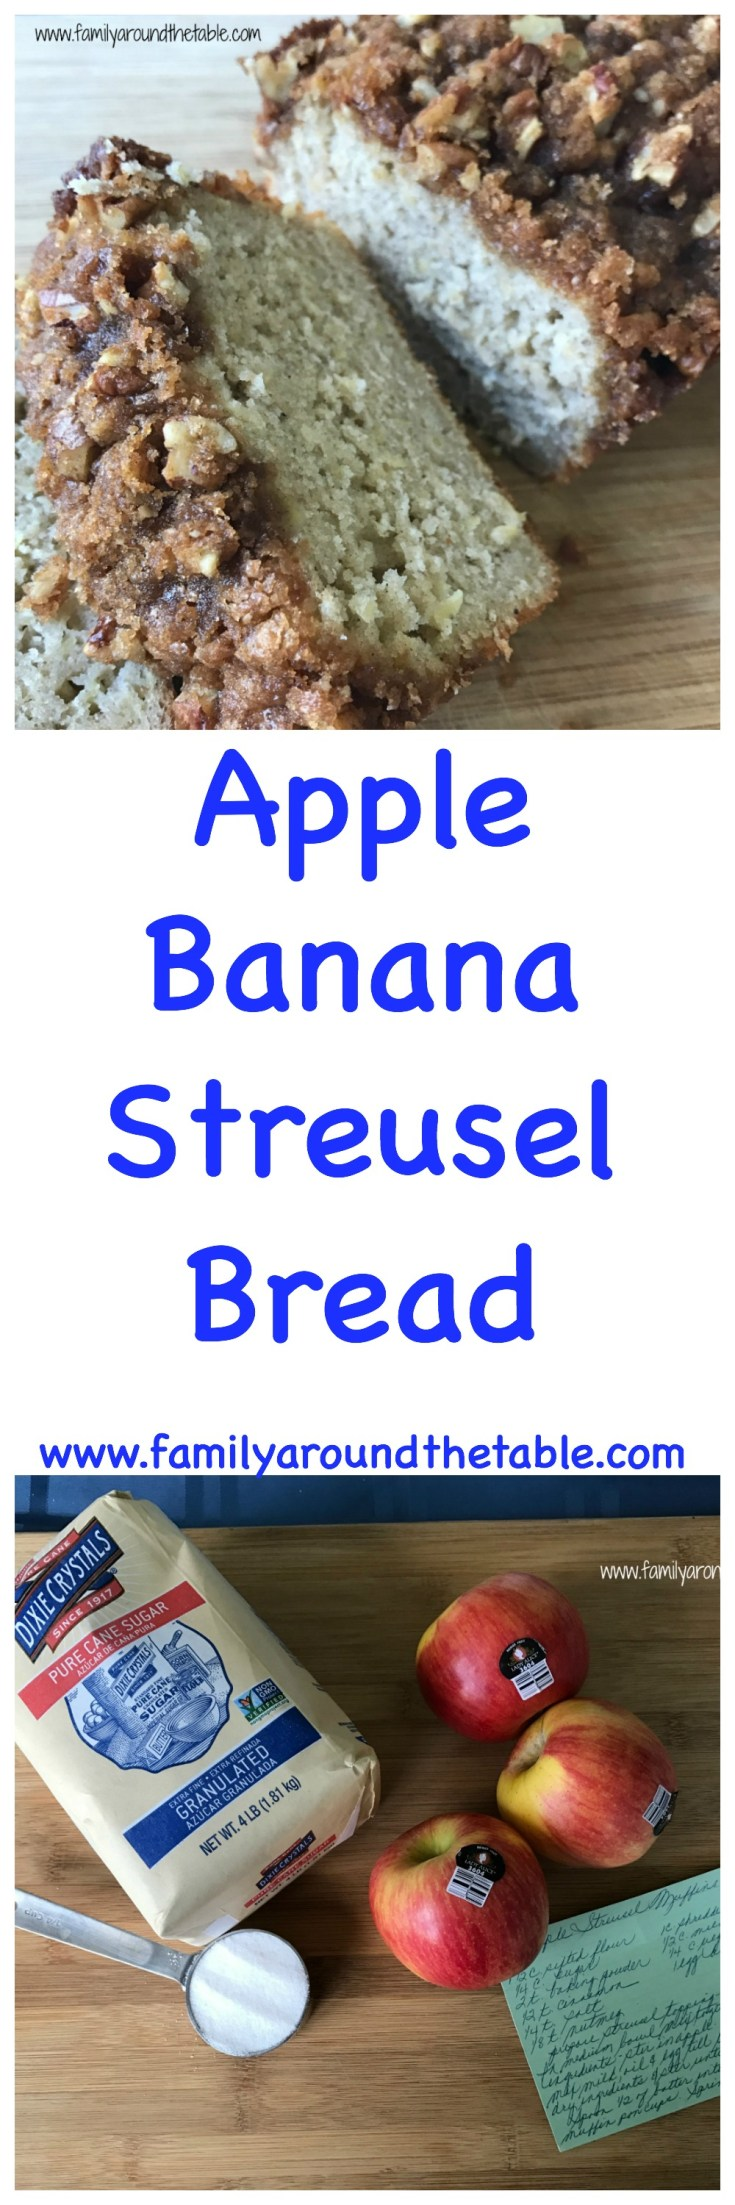 Wake up to Apple Banana Streusel Bread.